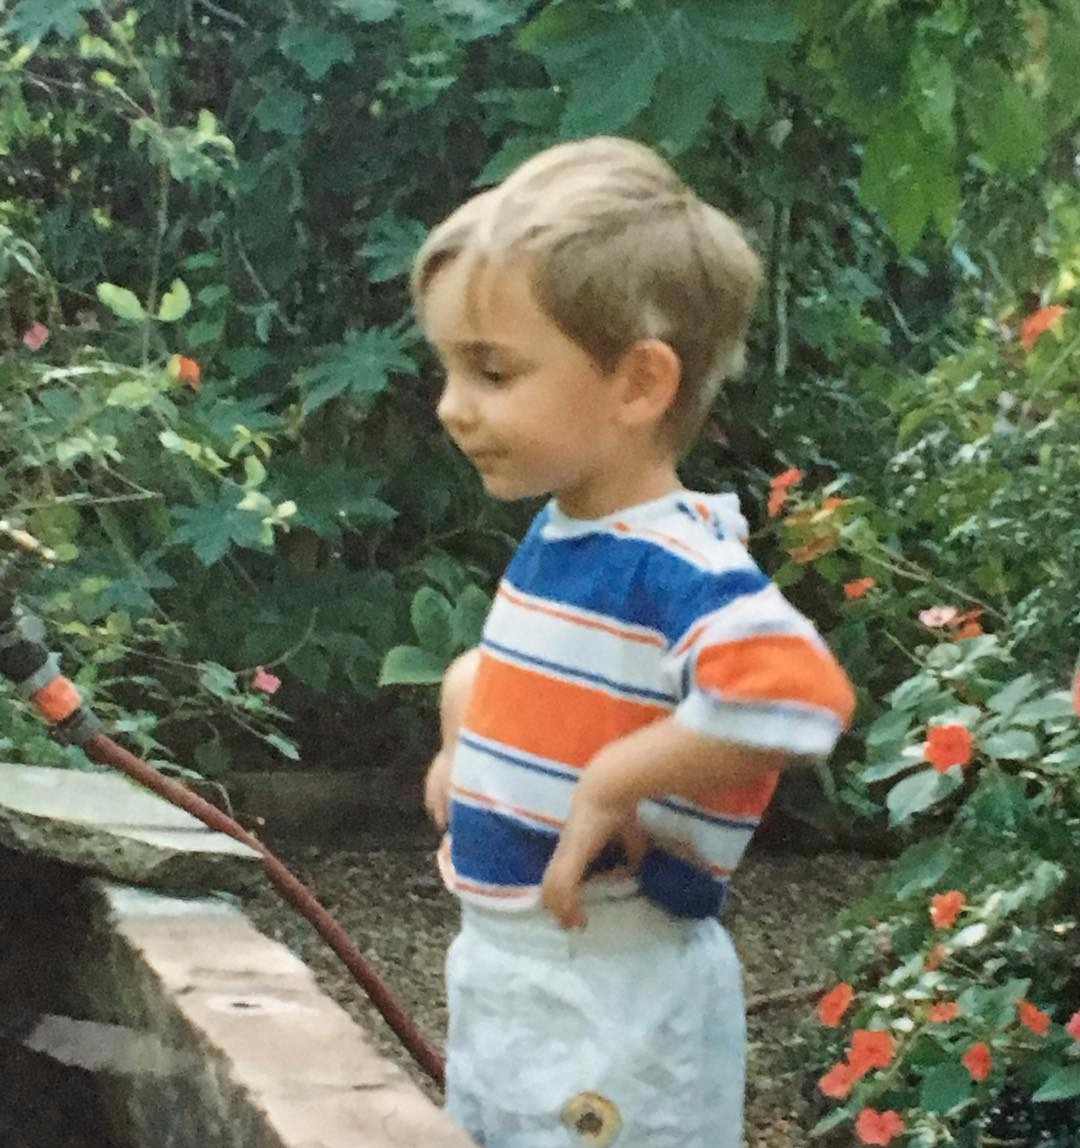 Young Alex Gaskarth is wandering in a garden. He is wearing a white tee-shirt with blue and orange stripes. He is holding her hand to his waist level.